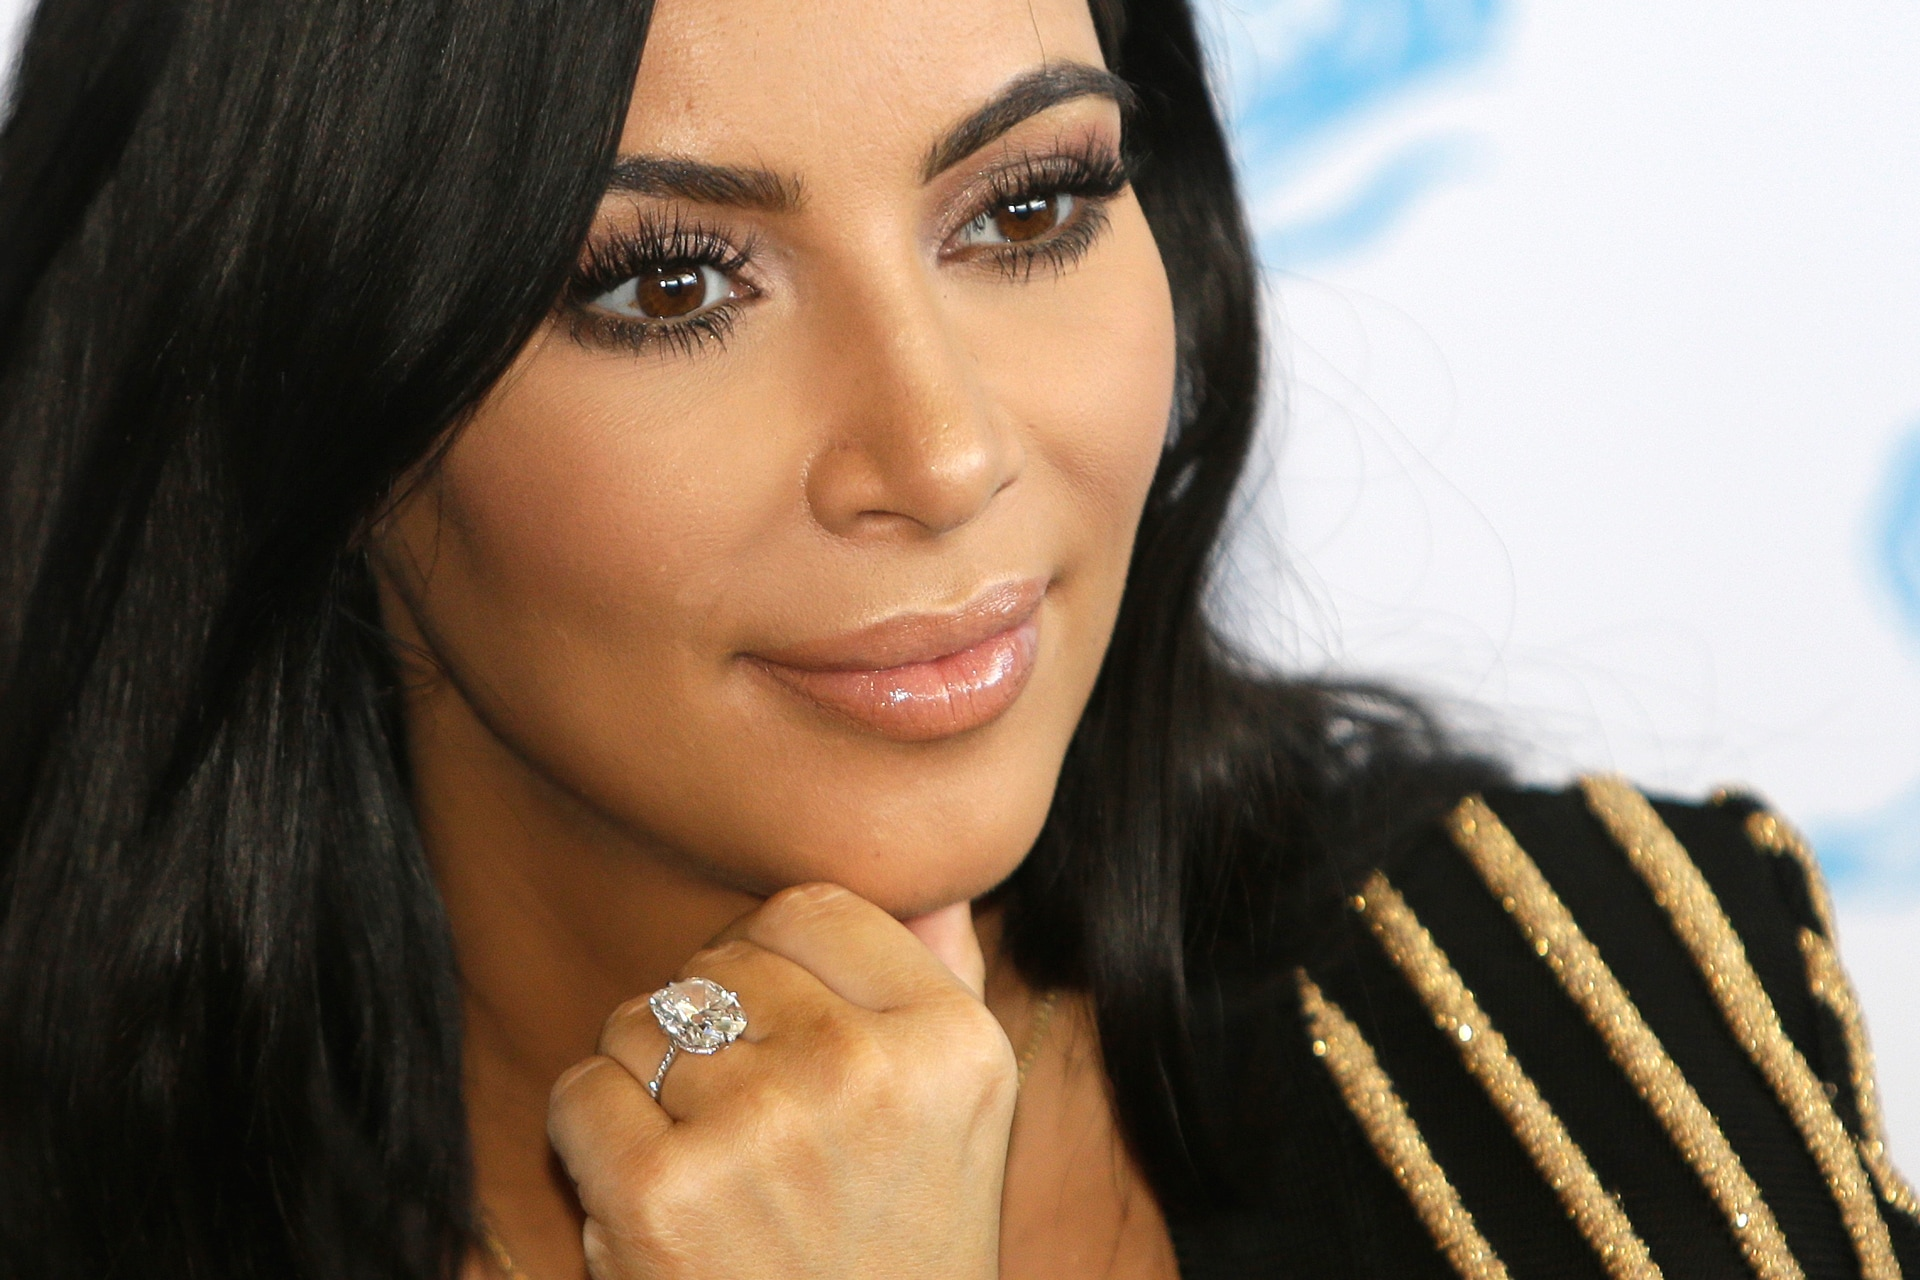 Kim Kardashian changes daughter's name, 'it doesn't flow'